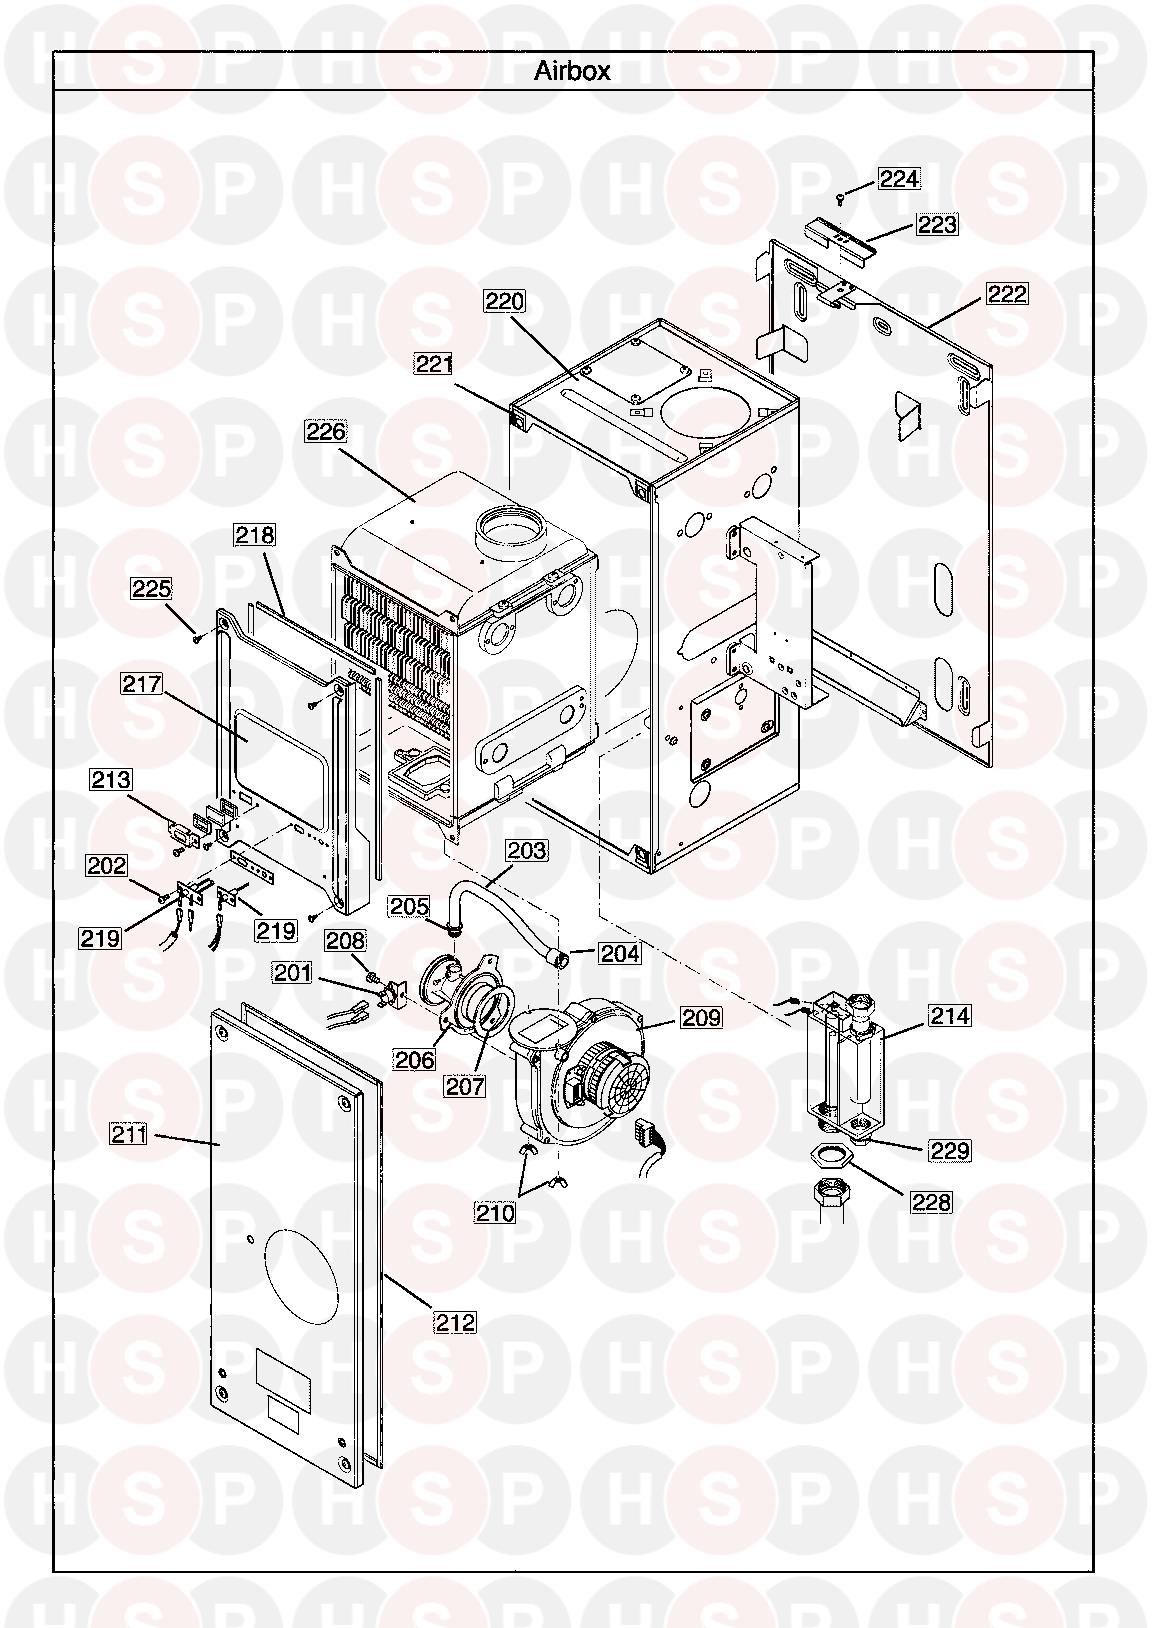 baxi 24he  air box  diagram